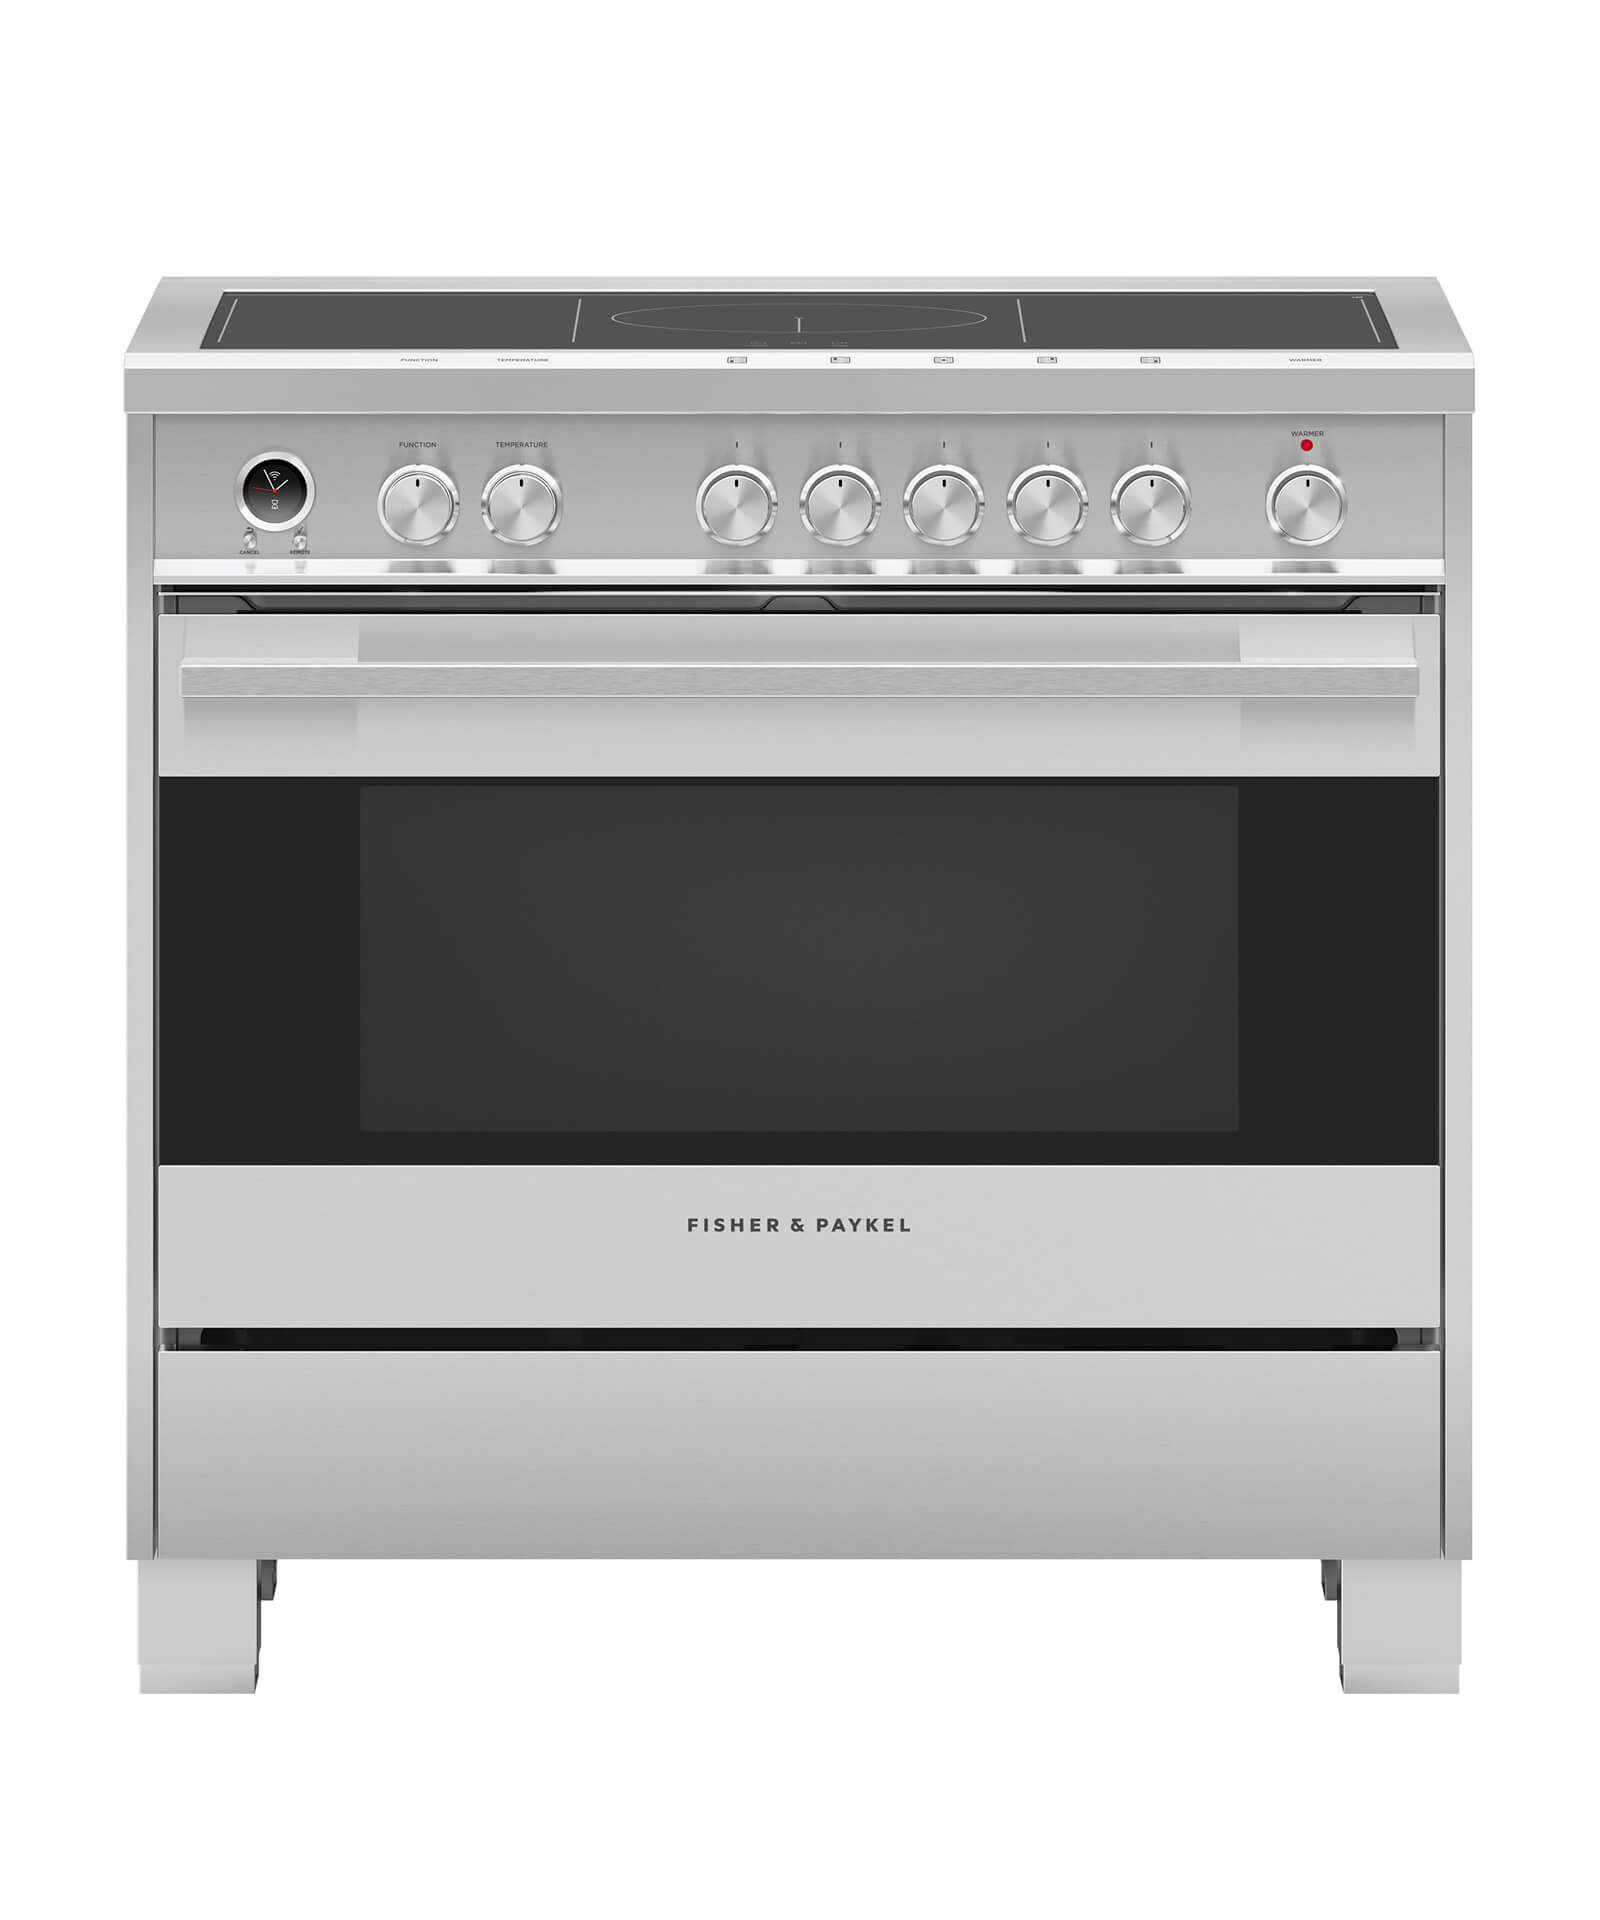 "Fisher and Paykel Induction Range 36"", Self-Cleaning"